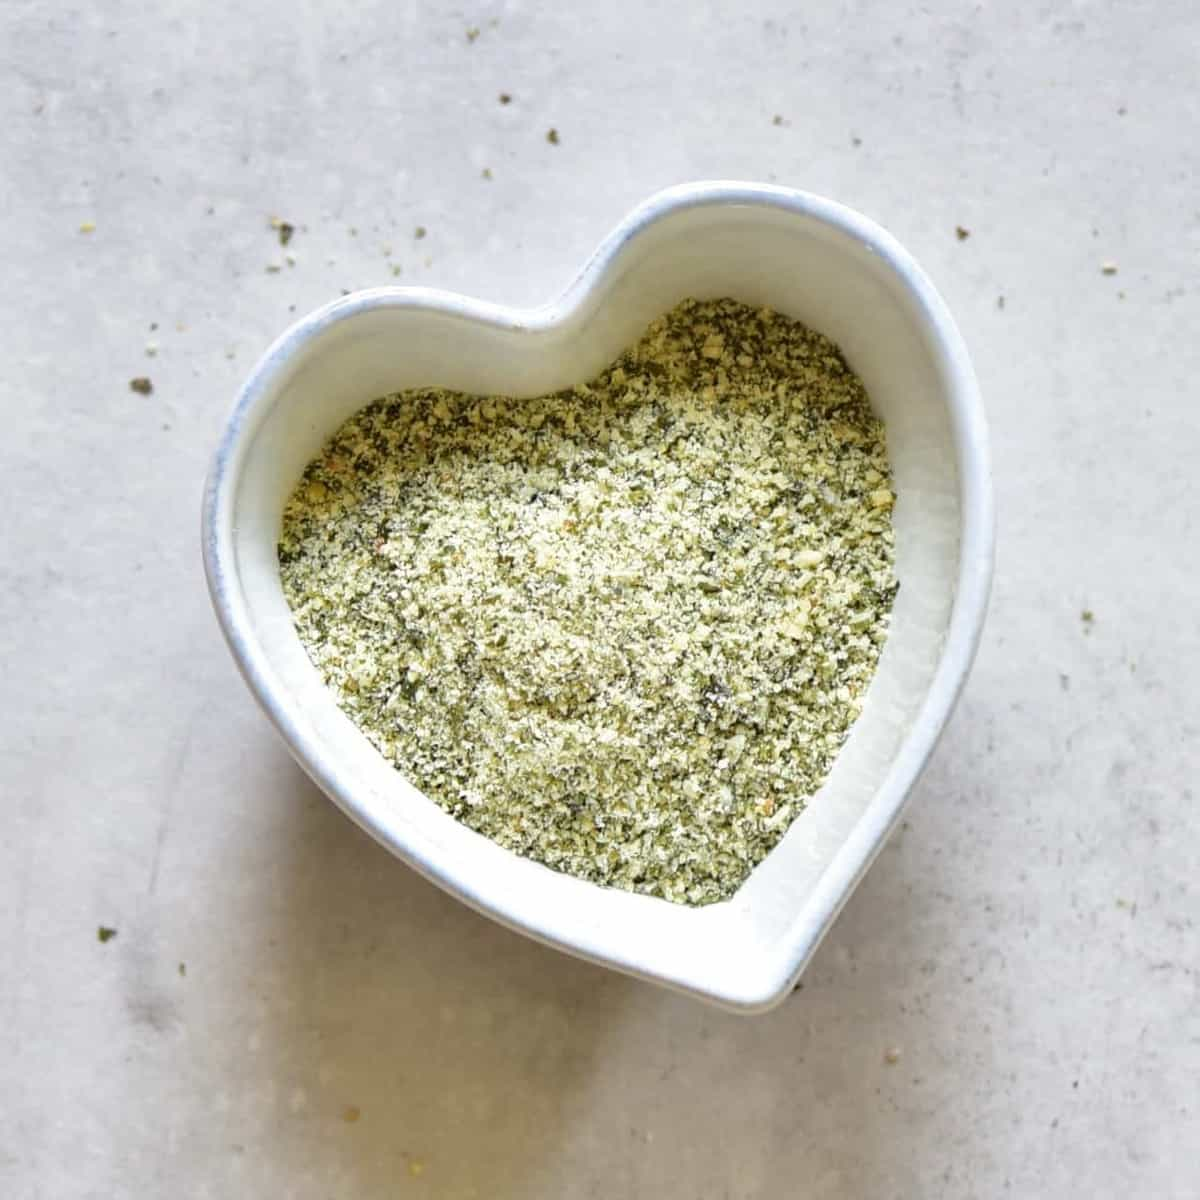 A heart shaped  bowl with blended hemp seeds